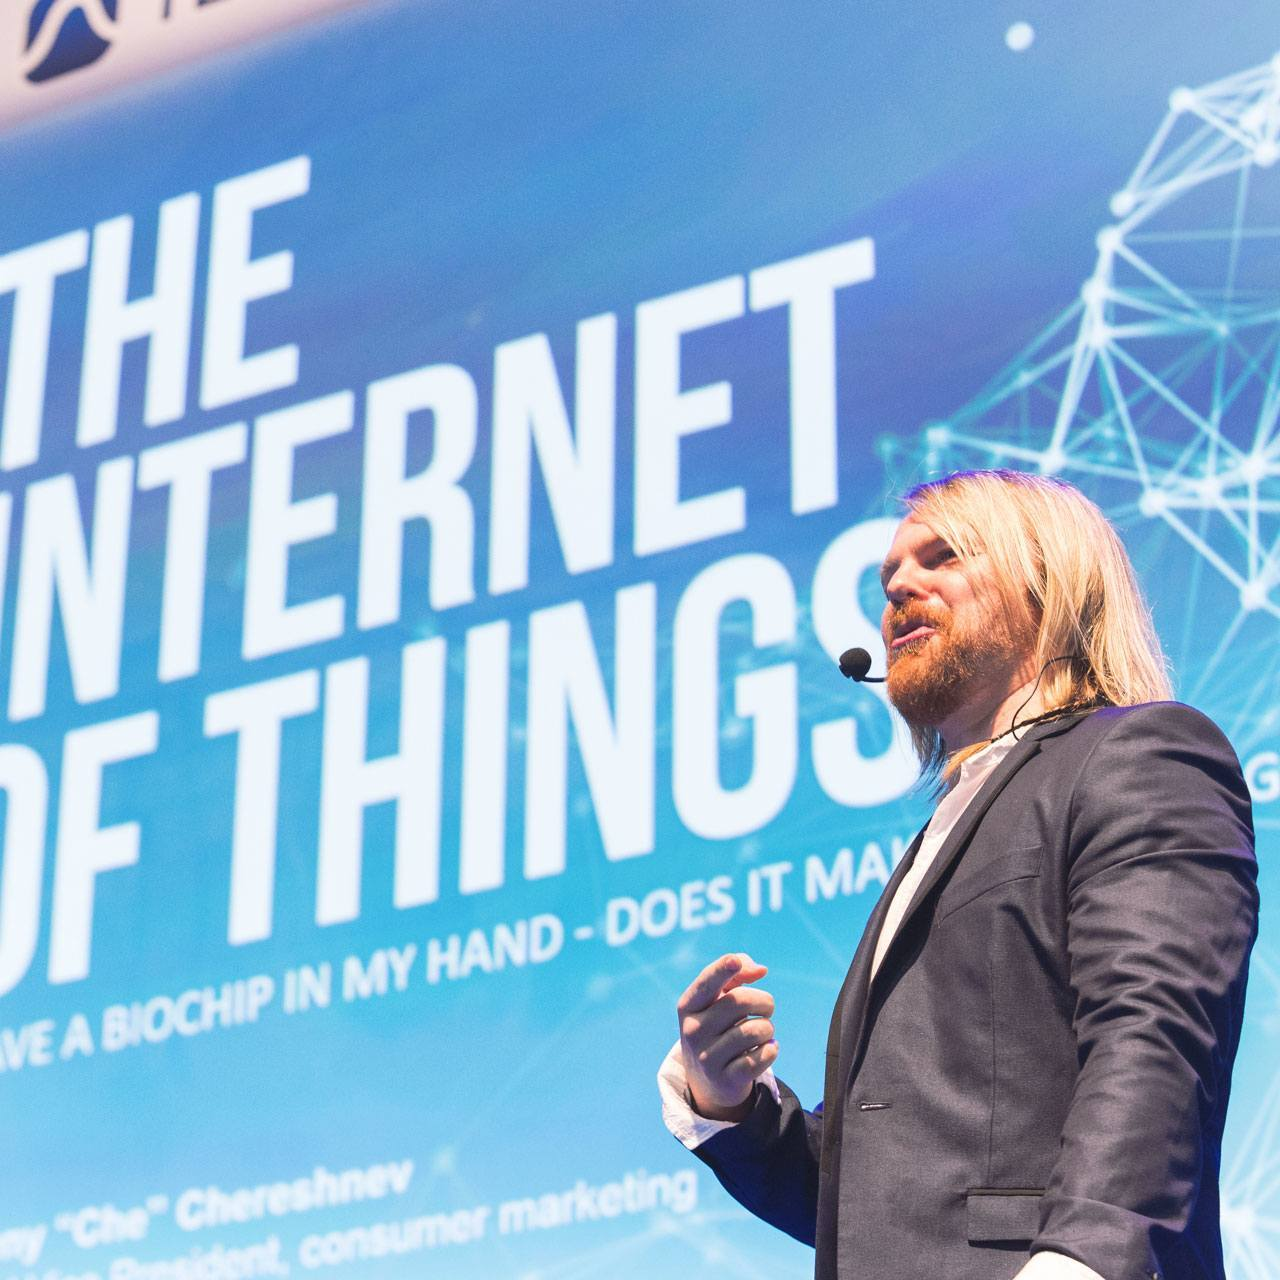 #BionicManDiary entry 006: Evgeny Chereshnev talks Internet of Us at Campus Party Brazil